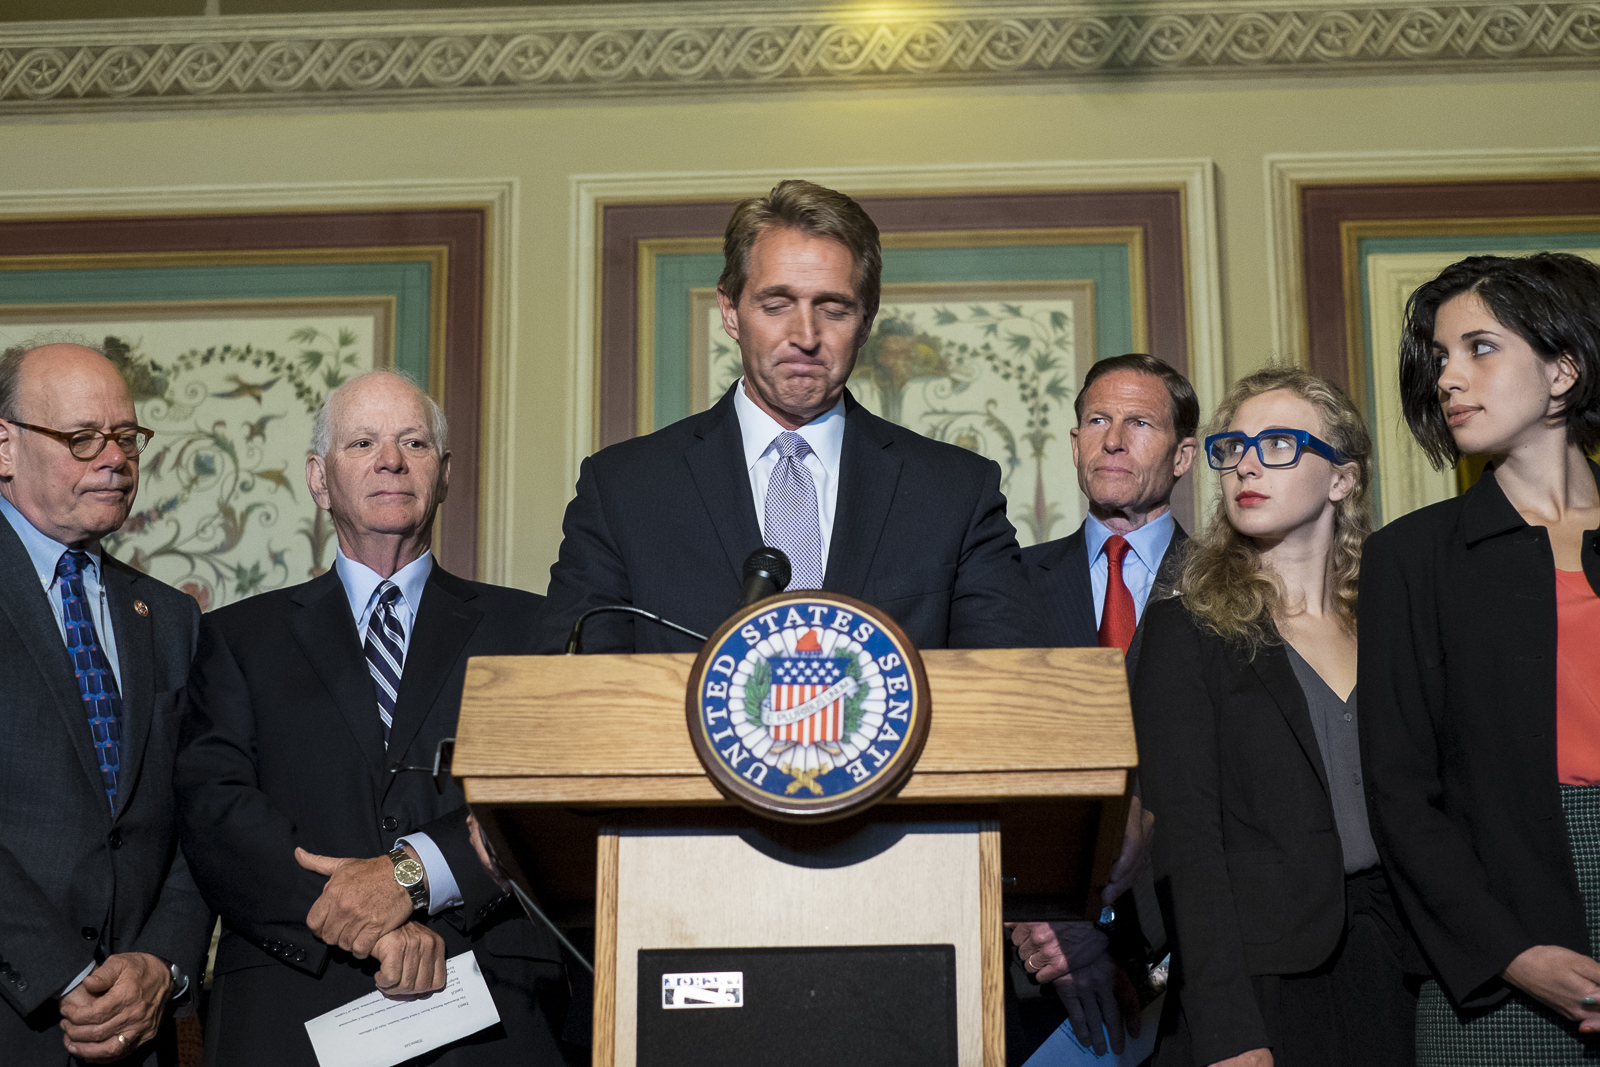 Maria Alyokhina (L) and Nadya Tolokonnikova, members of the Russian feminist punk rock protest group, Pussy Riot, look on as Senator Jeff Flake (R-AZ) speaks during a press conference with other members of the Senate Foreign Relations Committee on Capitol Hill in Washington, D.C., to discuss the state of human rights in Russia.